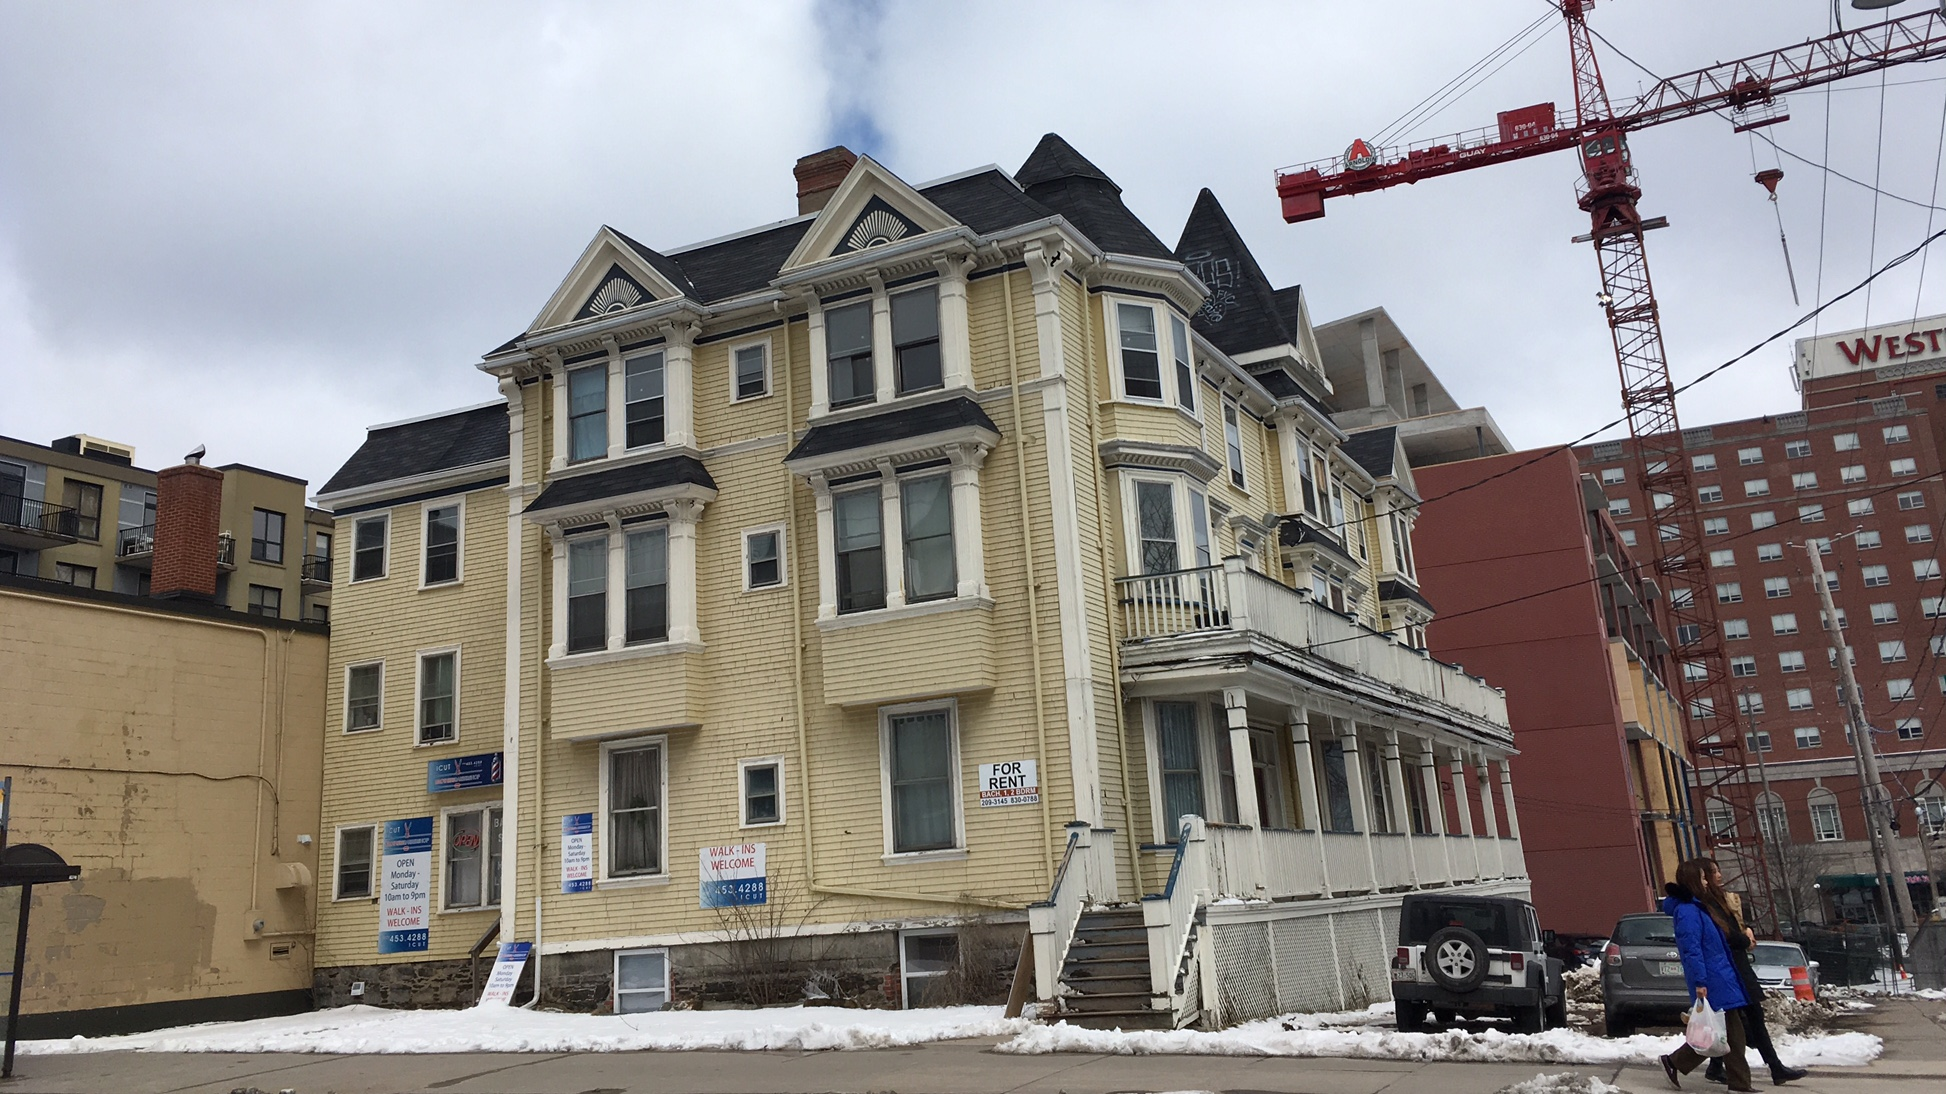 The historic Elmwood hotel was approved for demolition in November of 2016.